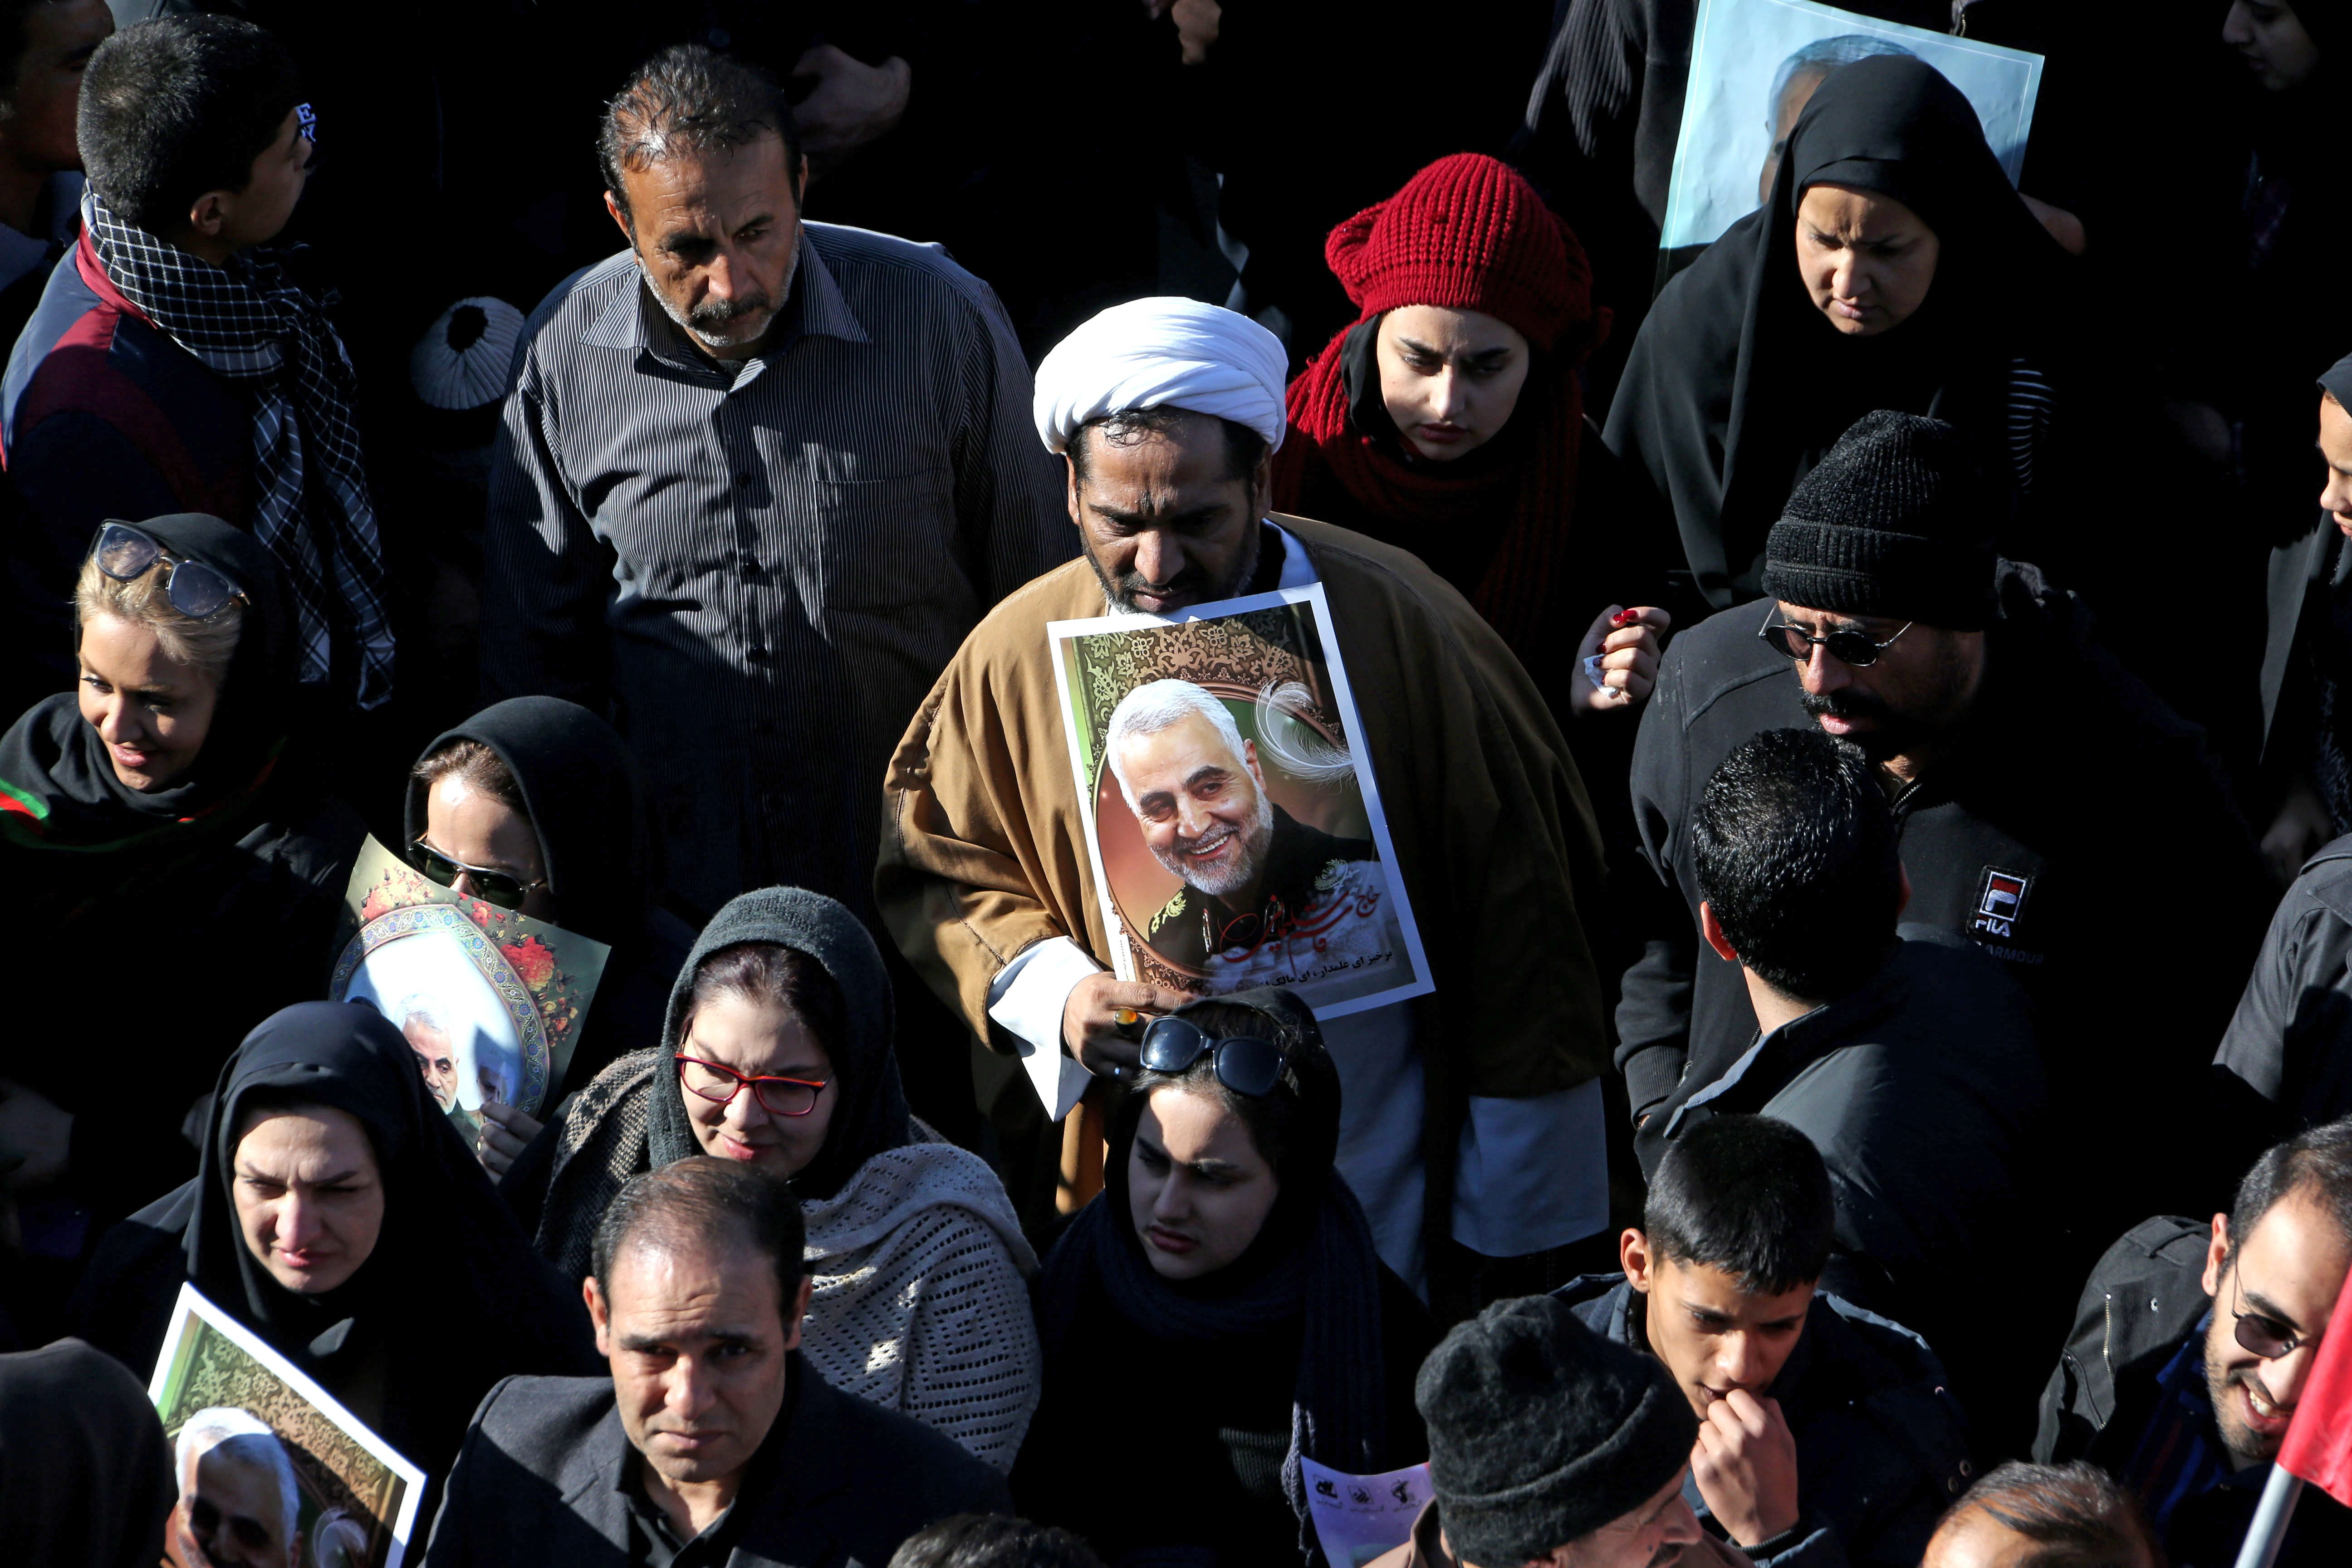 A crowd of Iranian mourners gather around an image of slain top general Qasem Soleimani during his funeral processions in Iran on January 7, 2020.